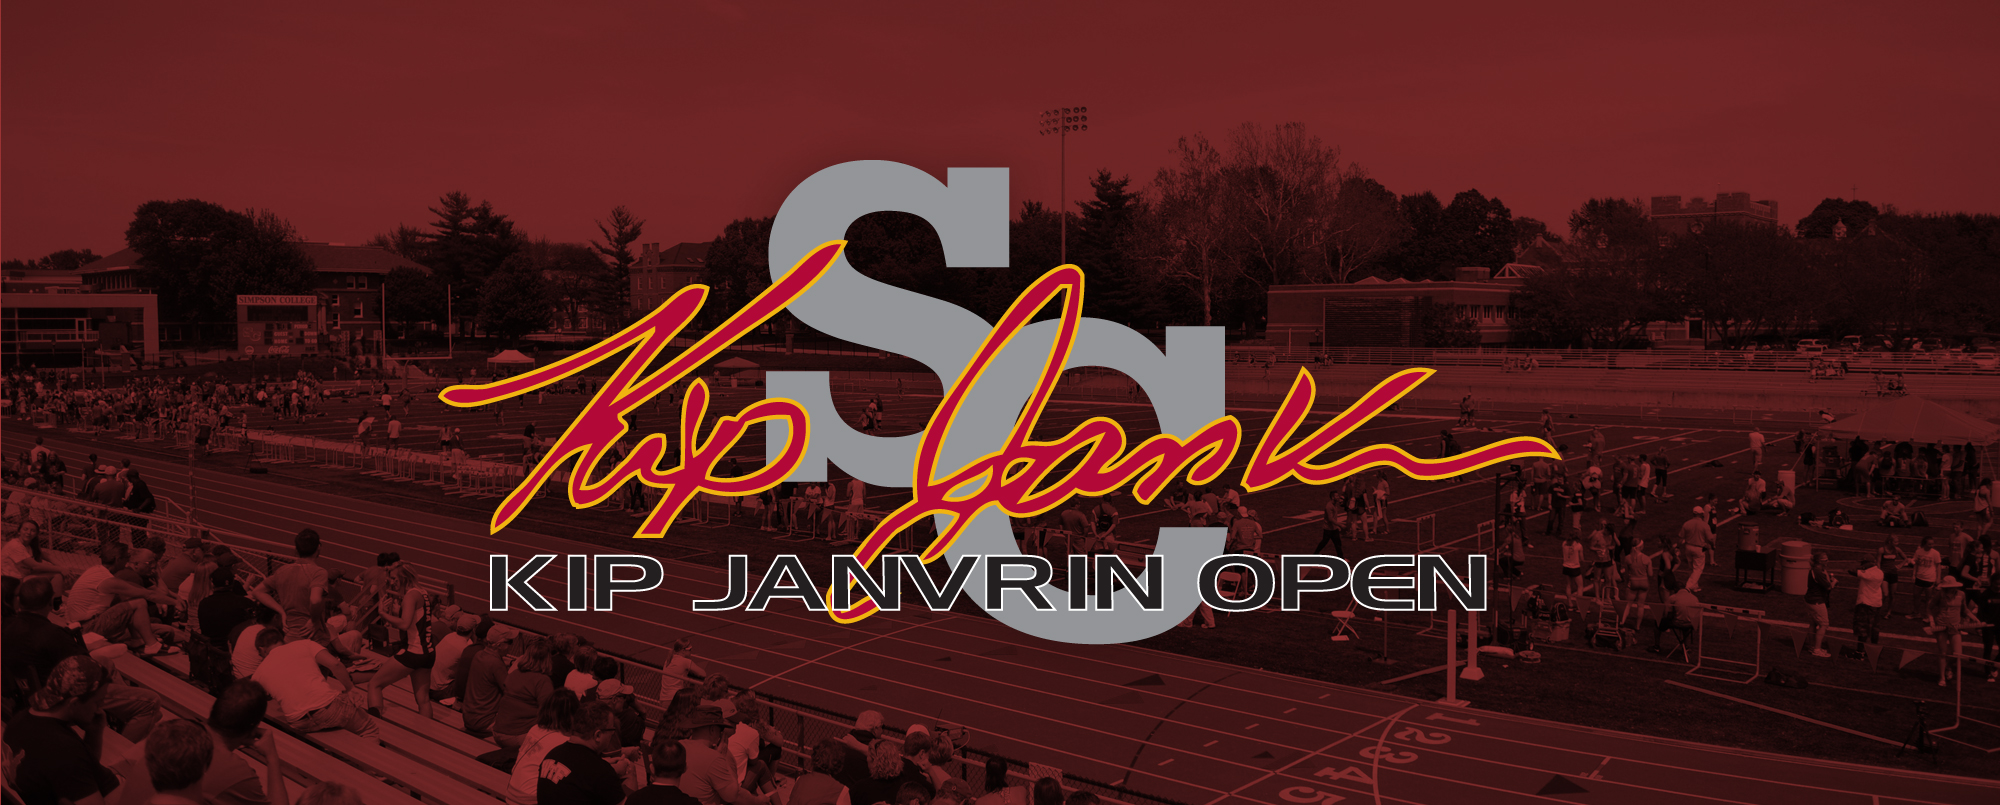 Simpson set to host Kip Janvrin Open